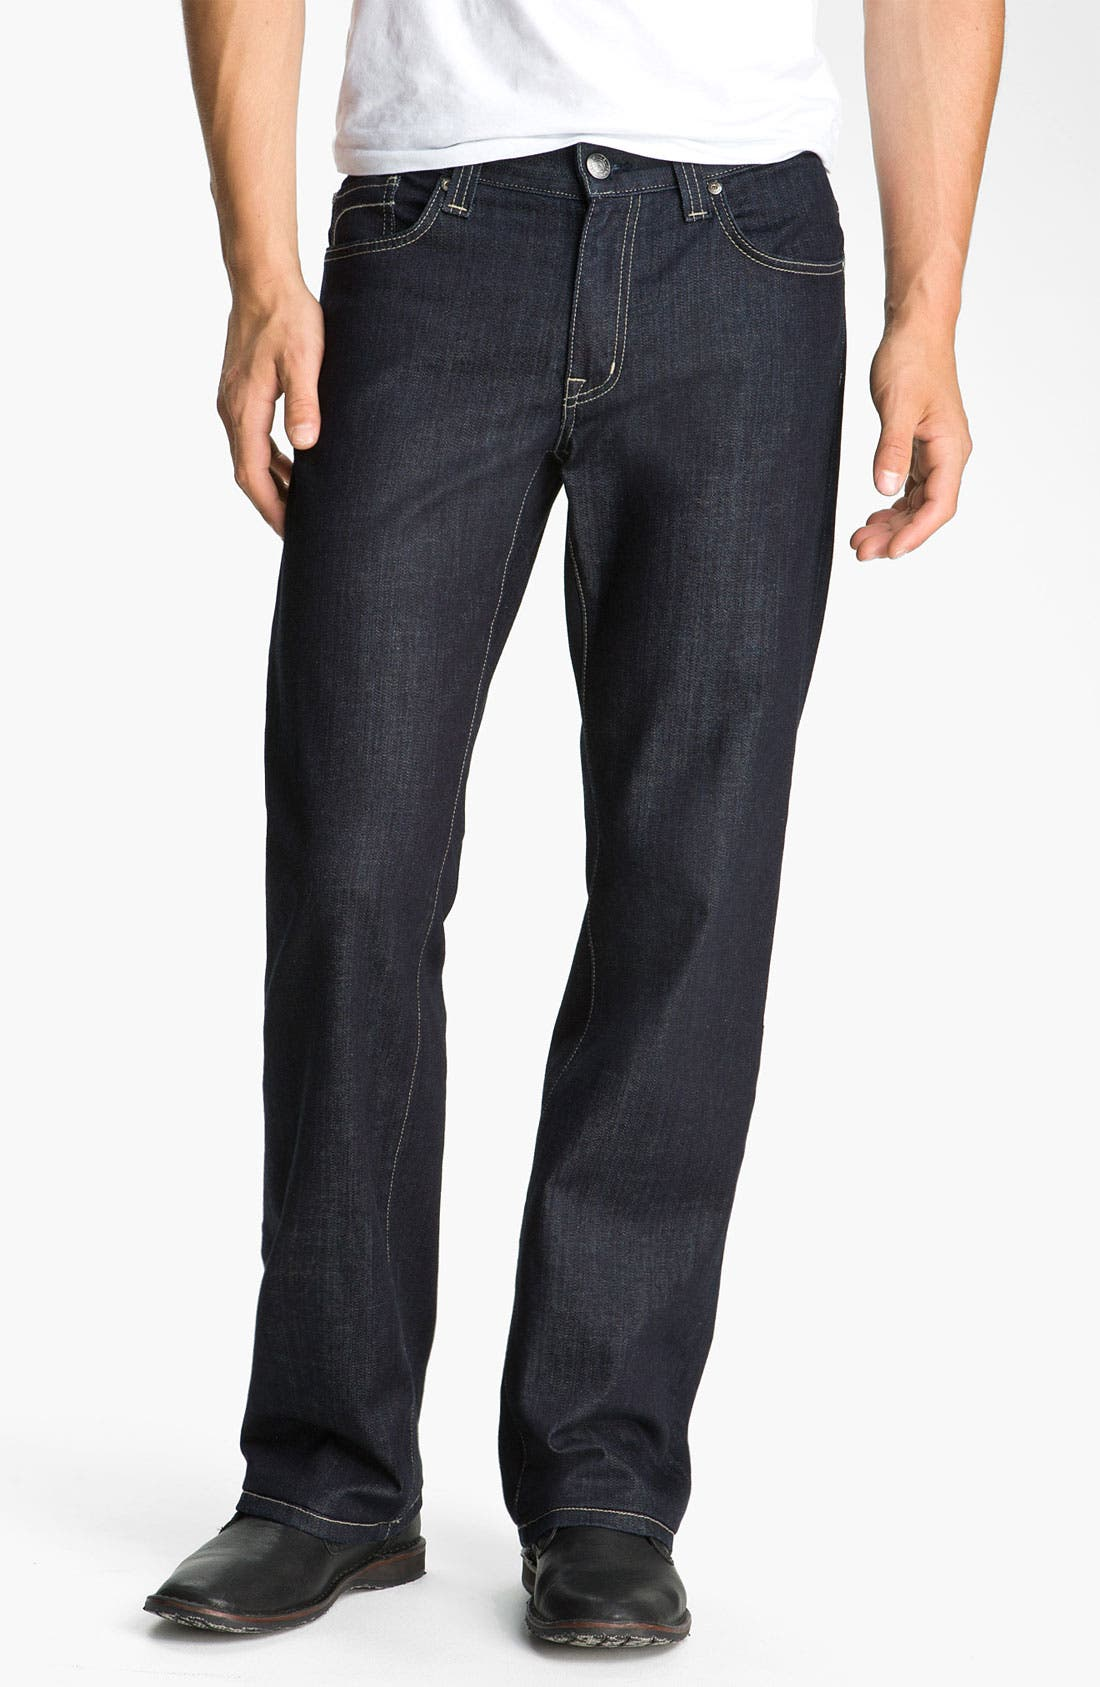 Alternate Image 1 Selected - Fidelity Denim 'Camino' Relaxed Leg Jeans (Pacific Dark)